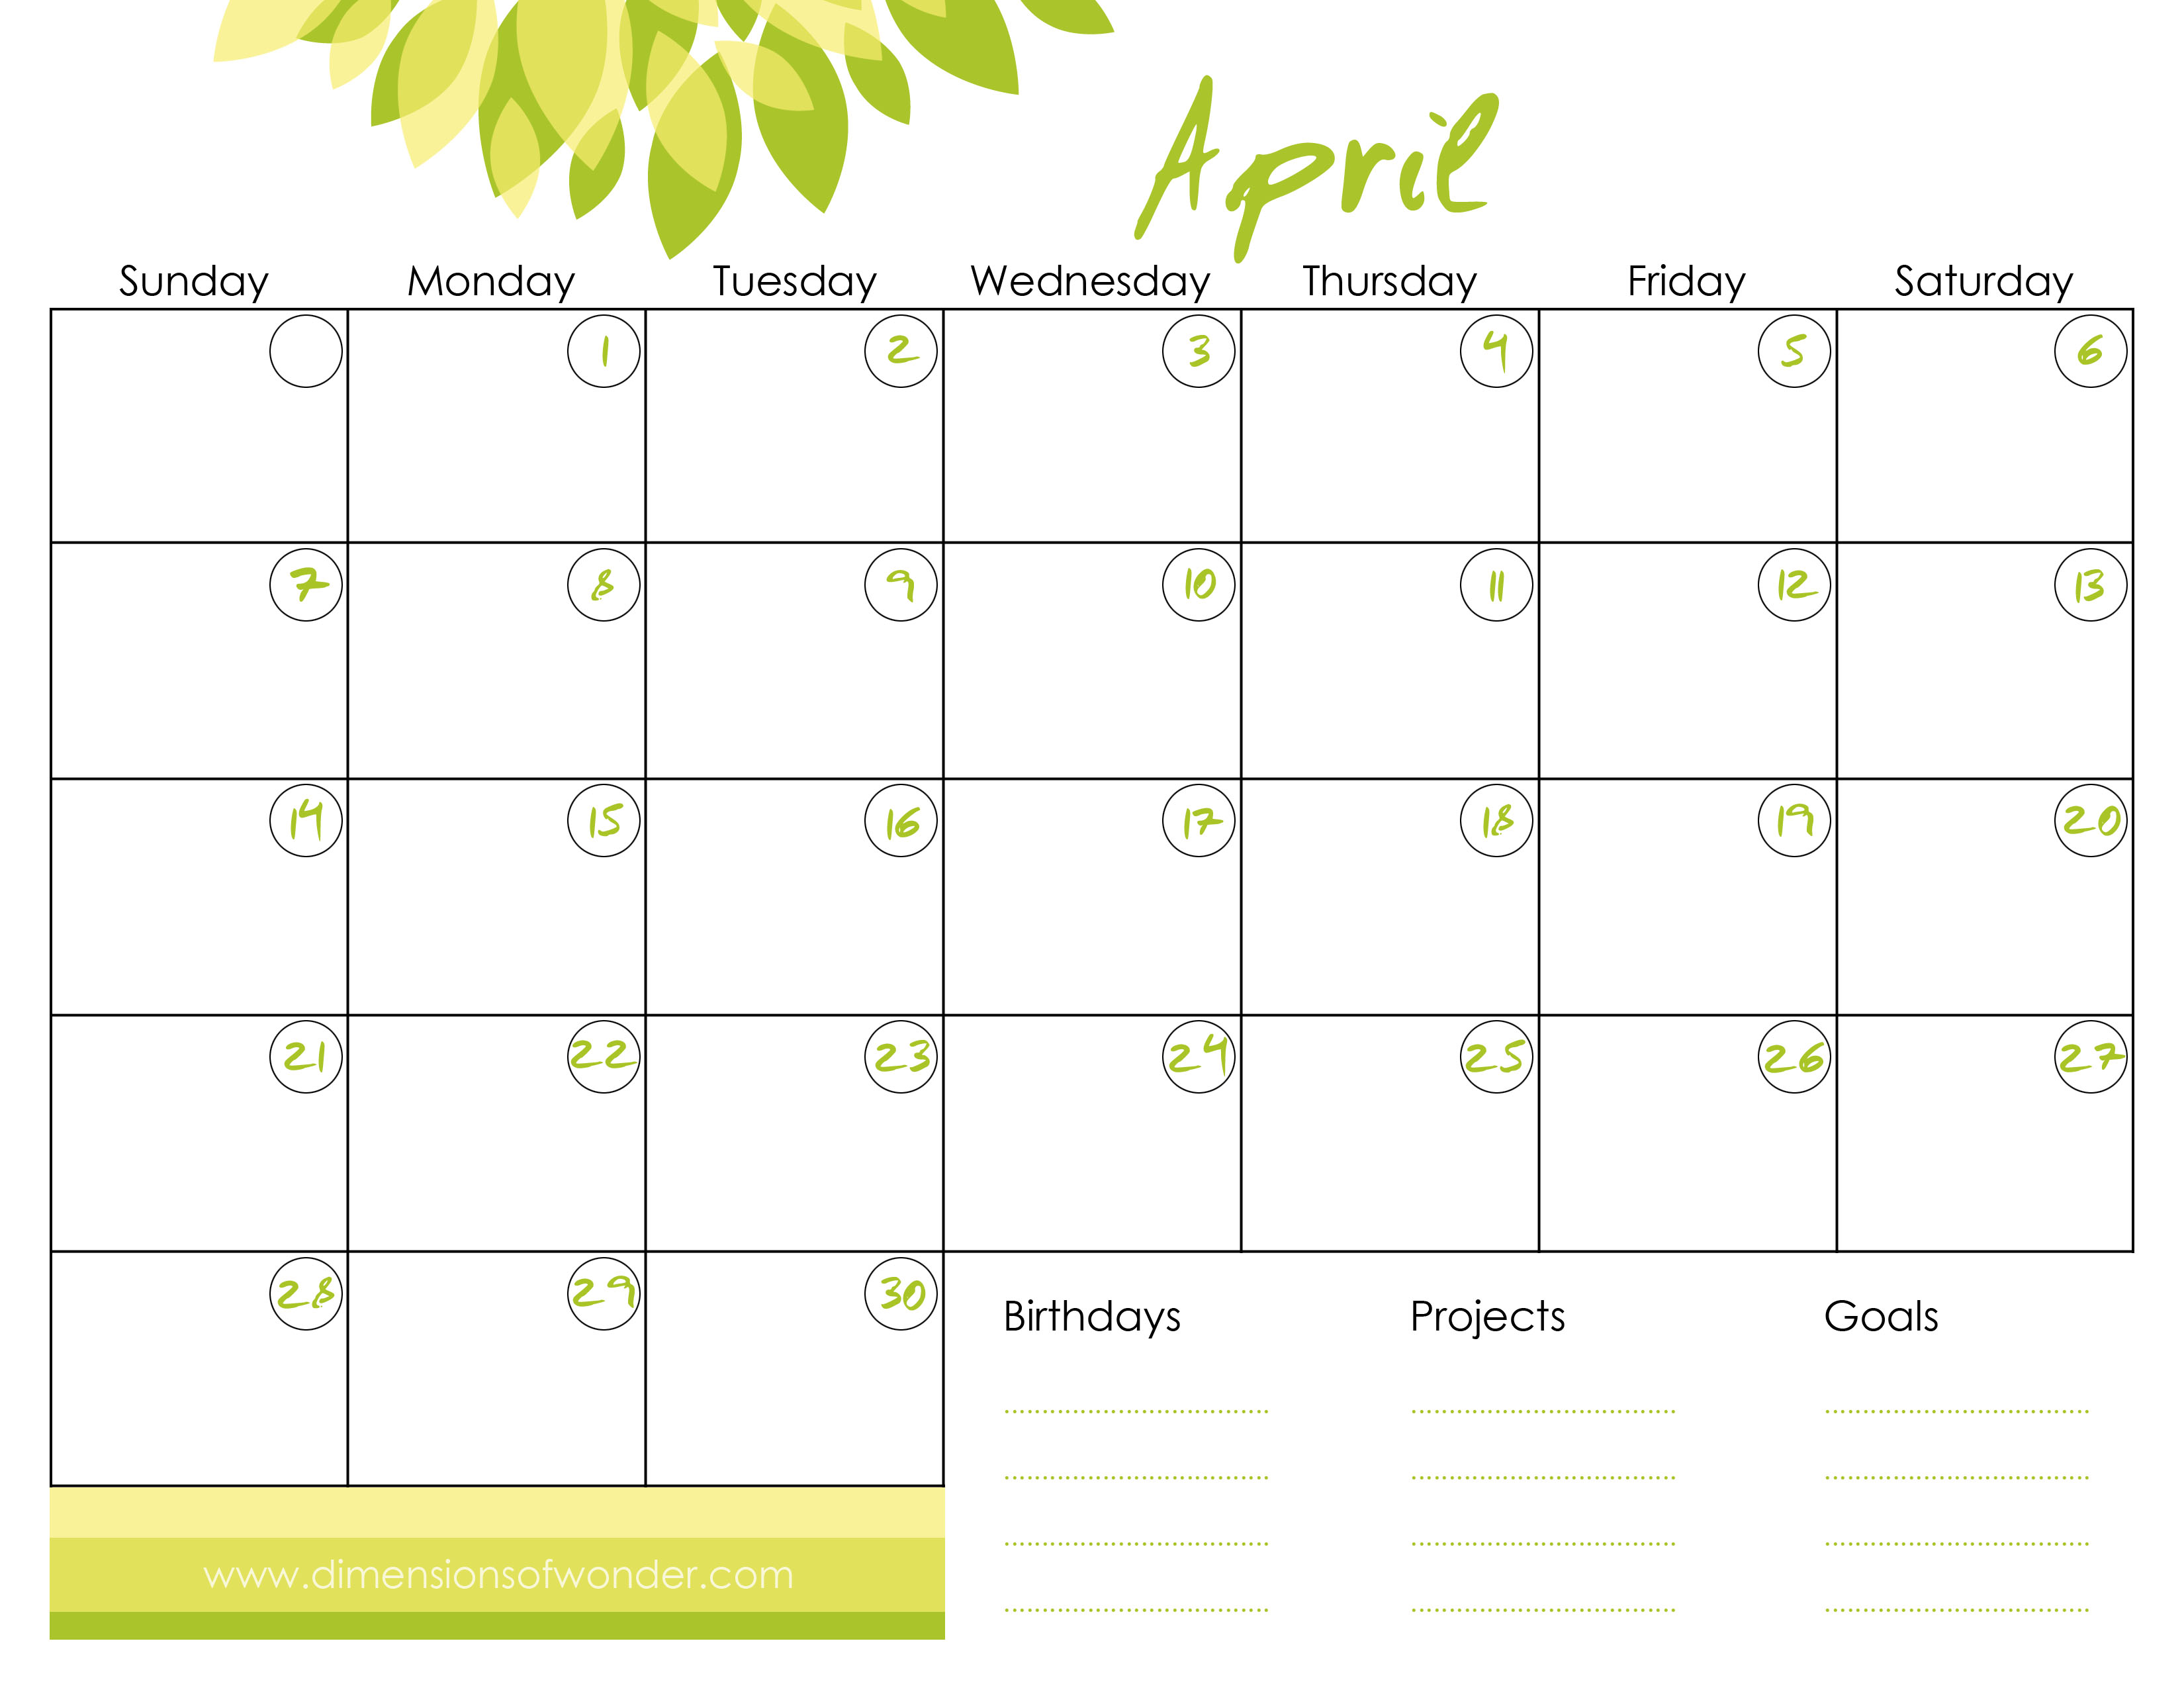 Free Online Calendar PDF Month on a Page